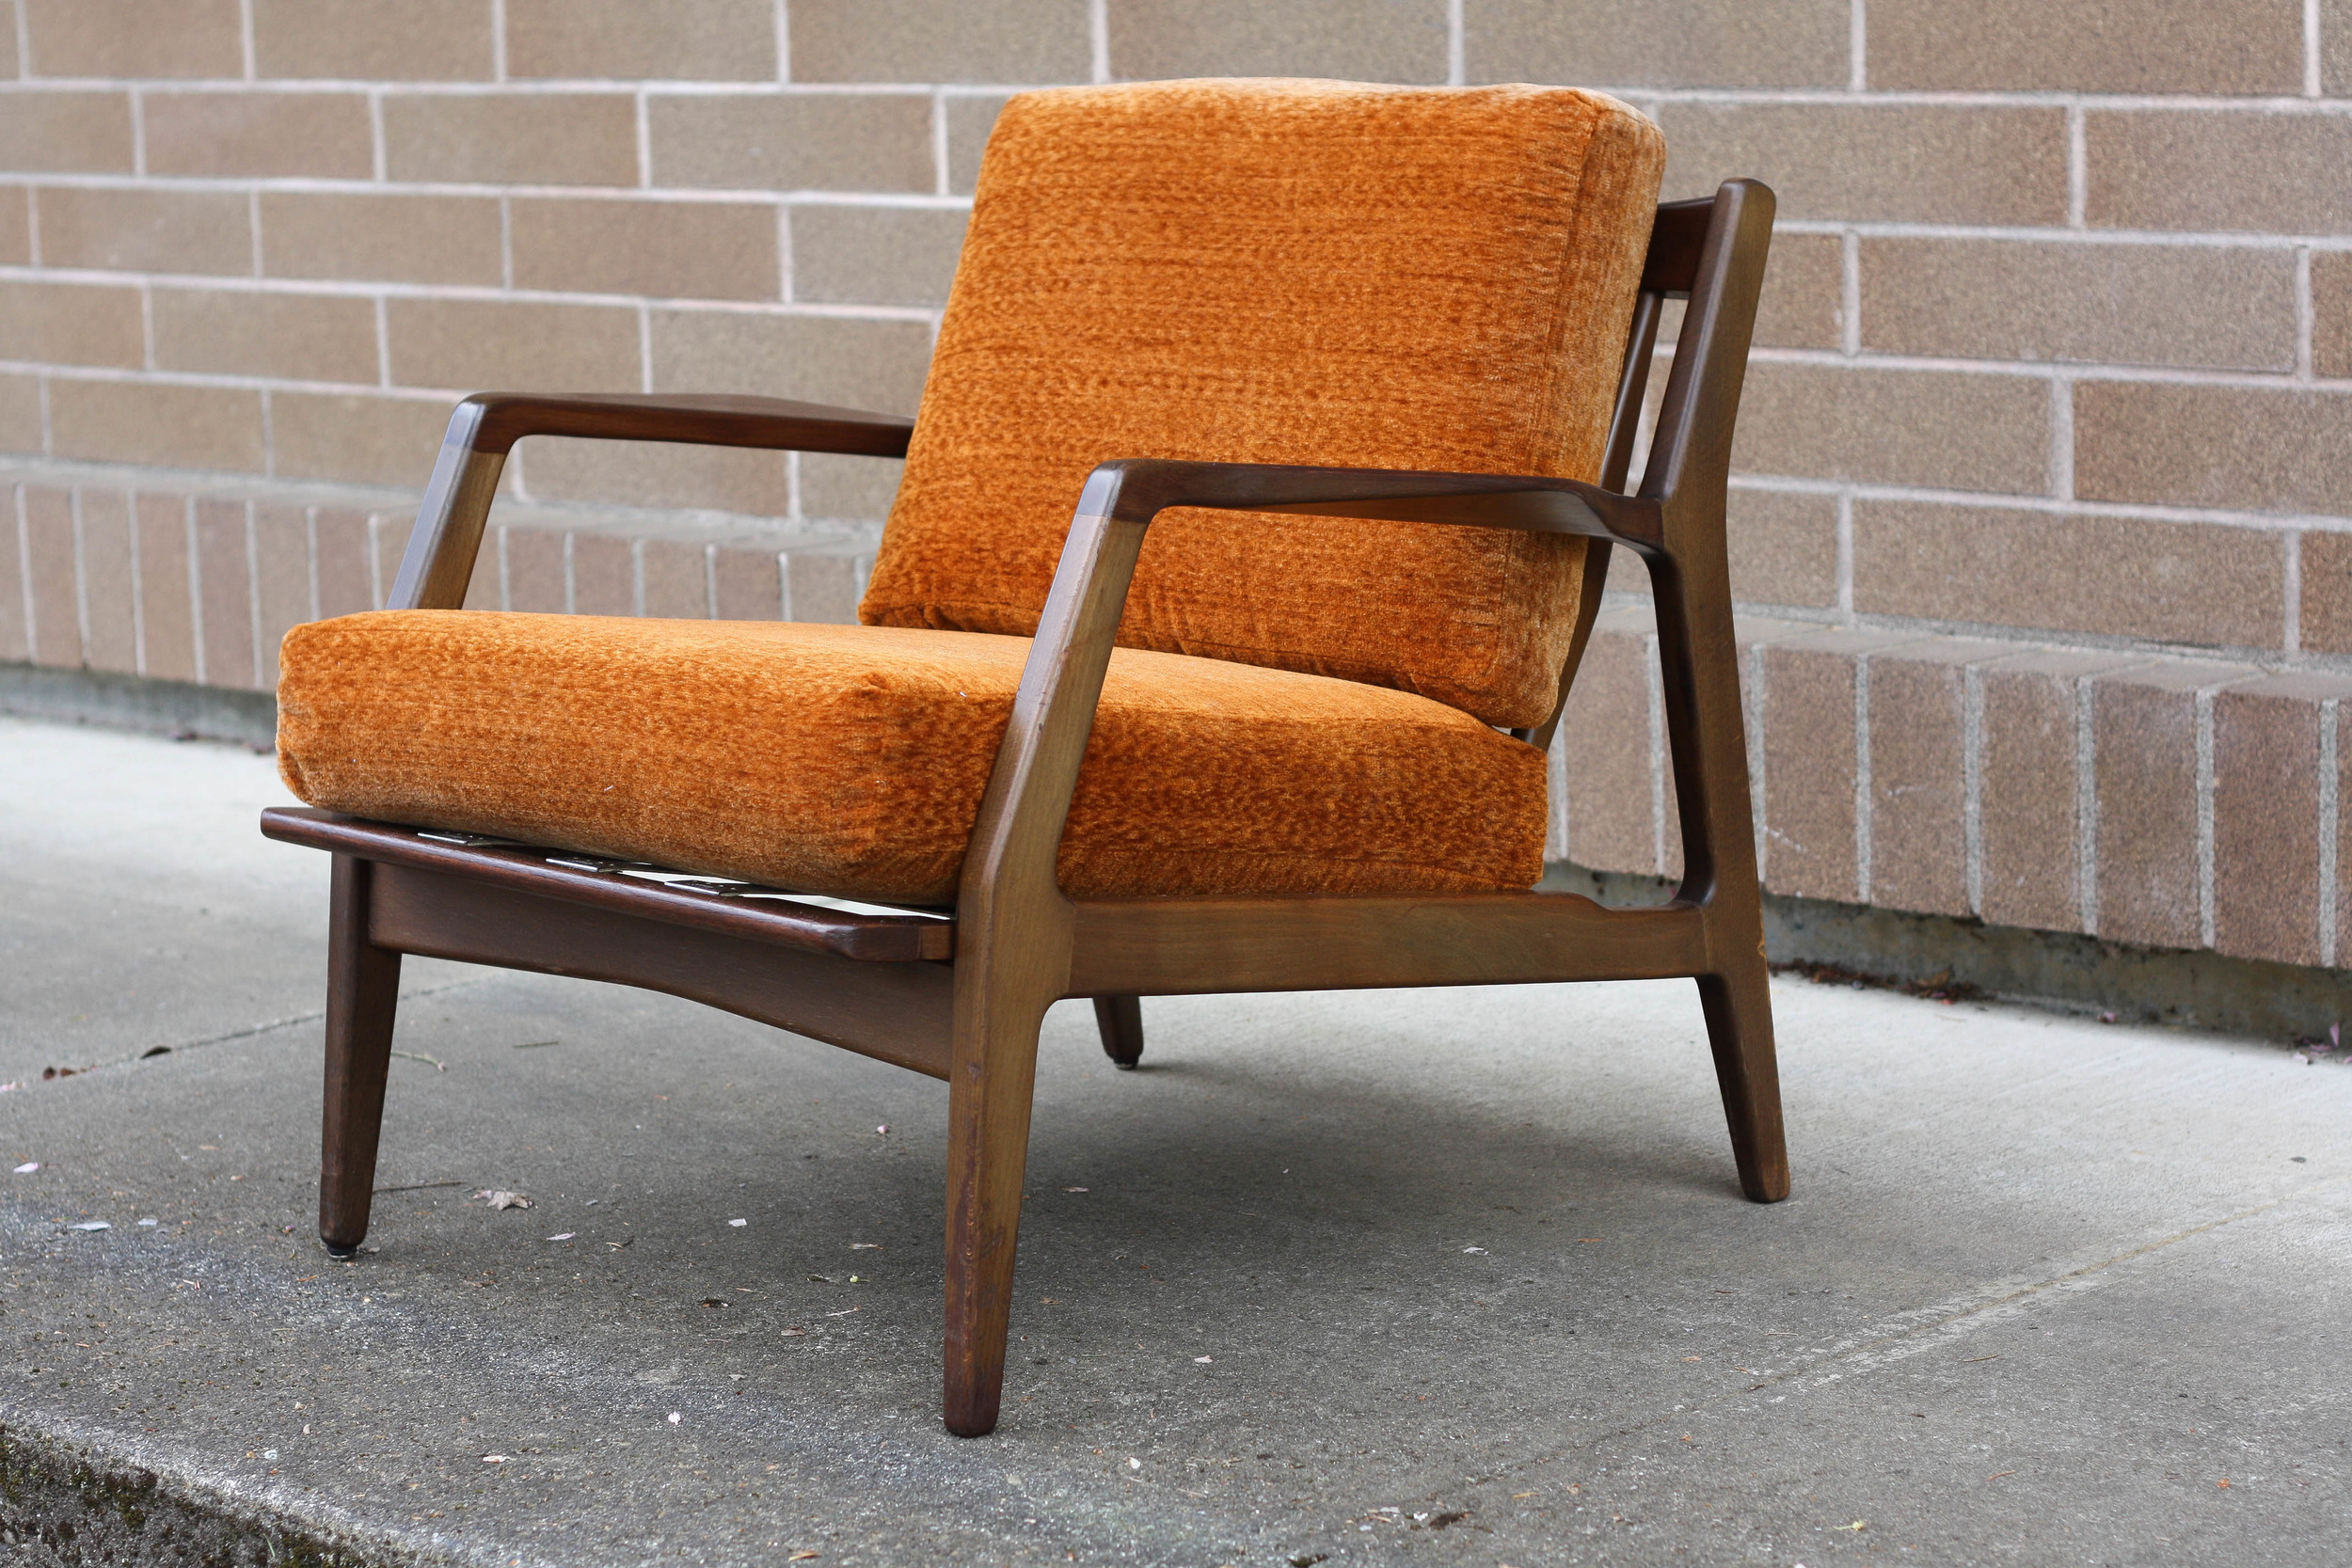 Selig Chair Ib Kofod Larsen Lounge Chair For Selig Mid And Mod